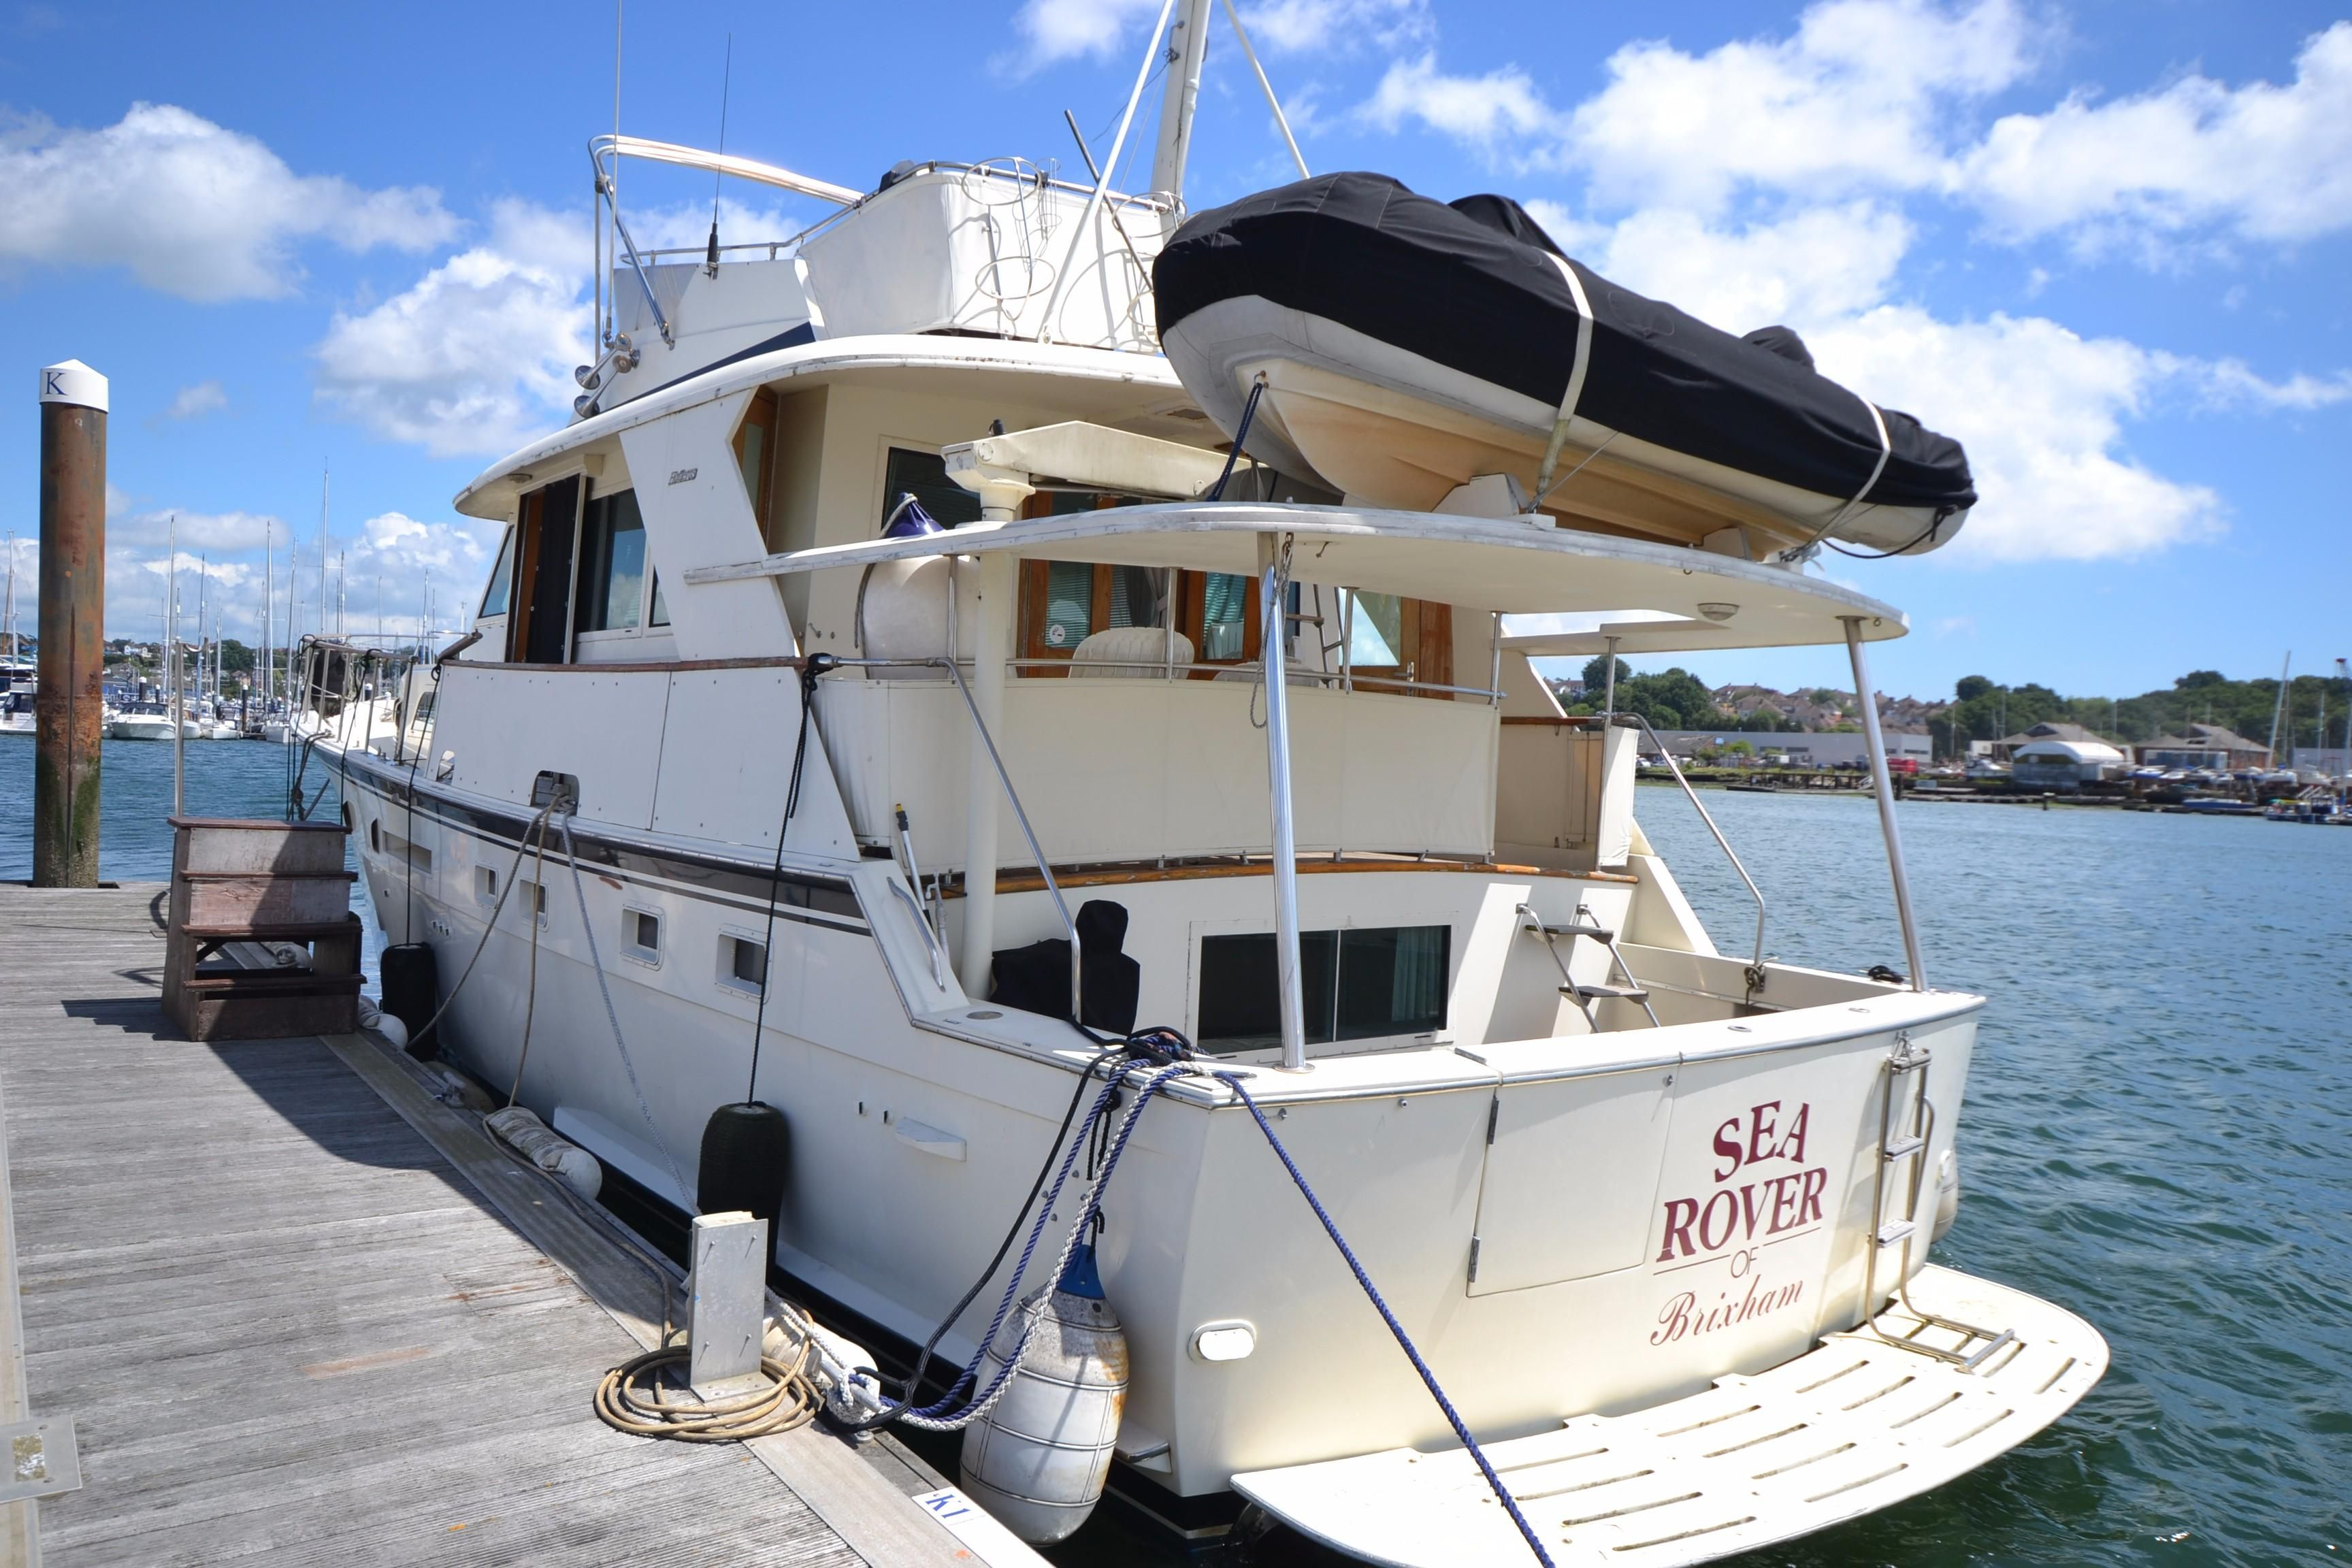 1991 hatteras 53 motor yacht power boat for sale www for Large motor yachts for sale